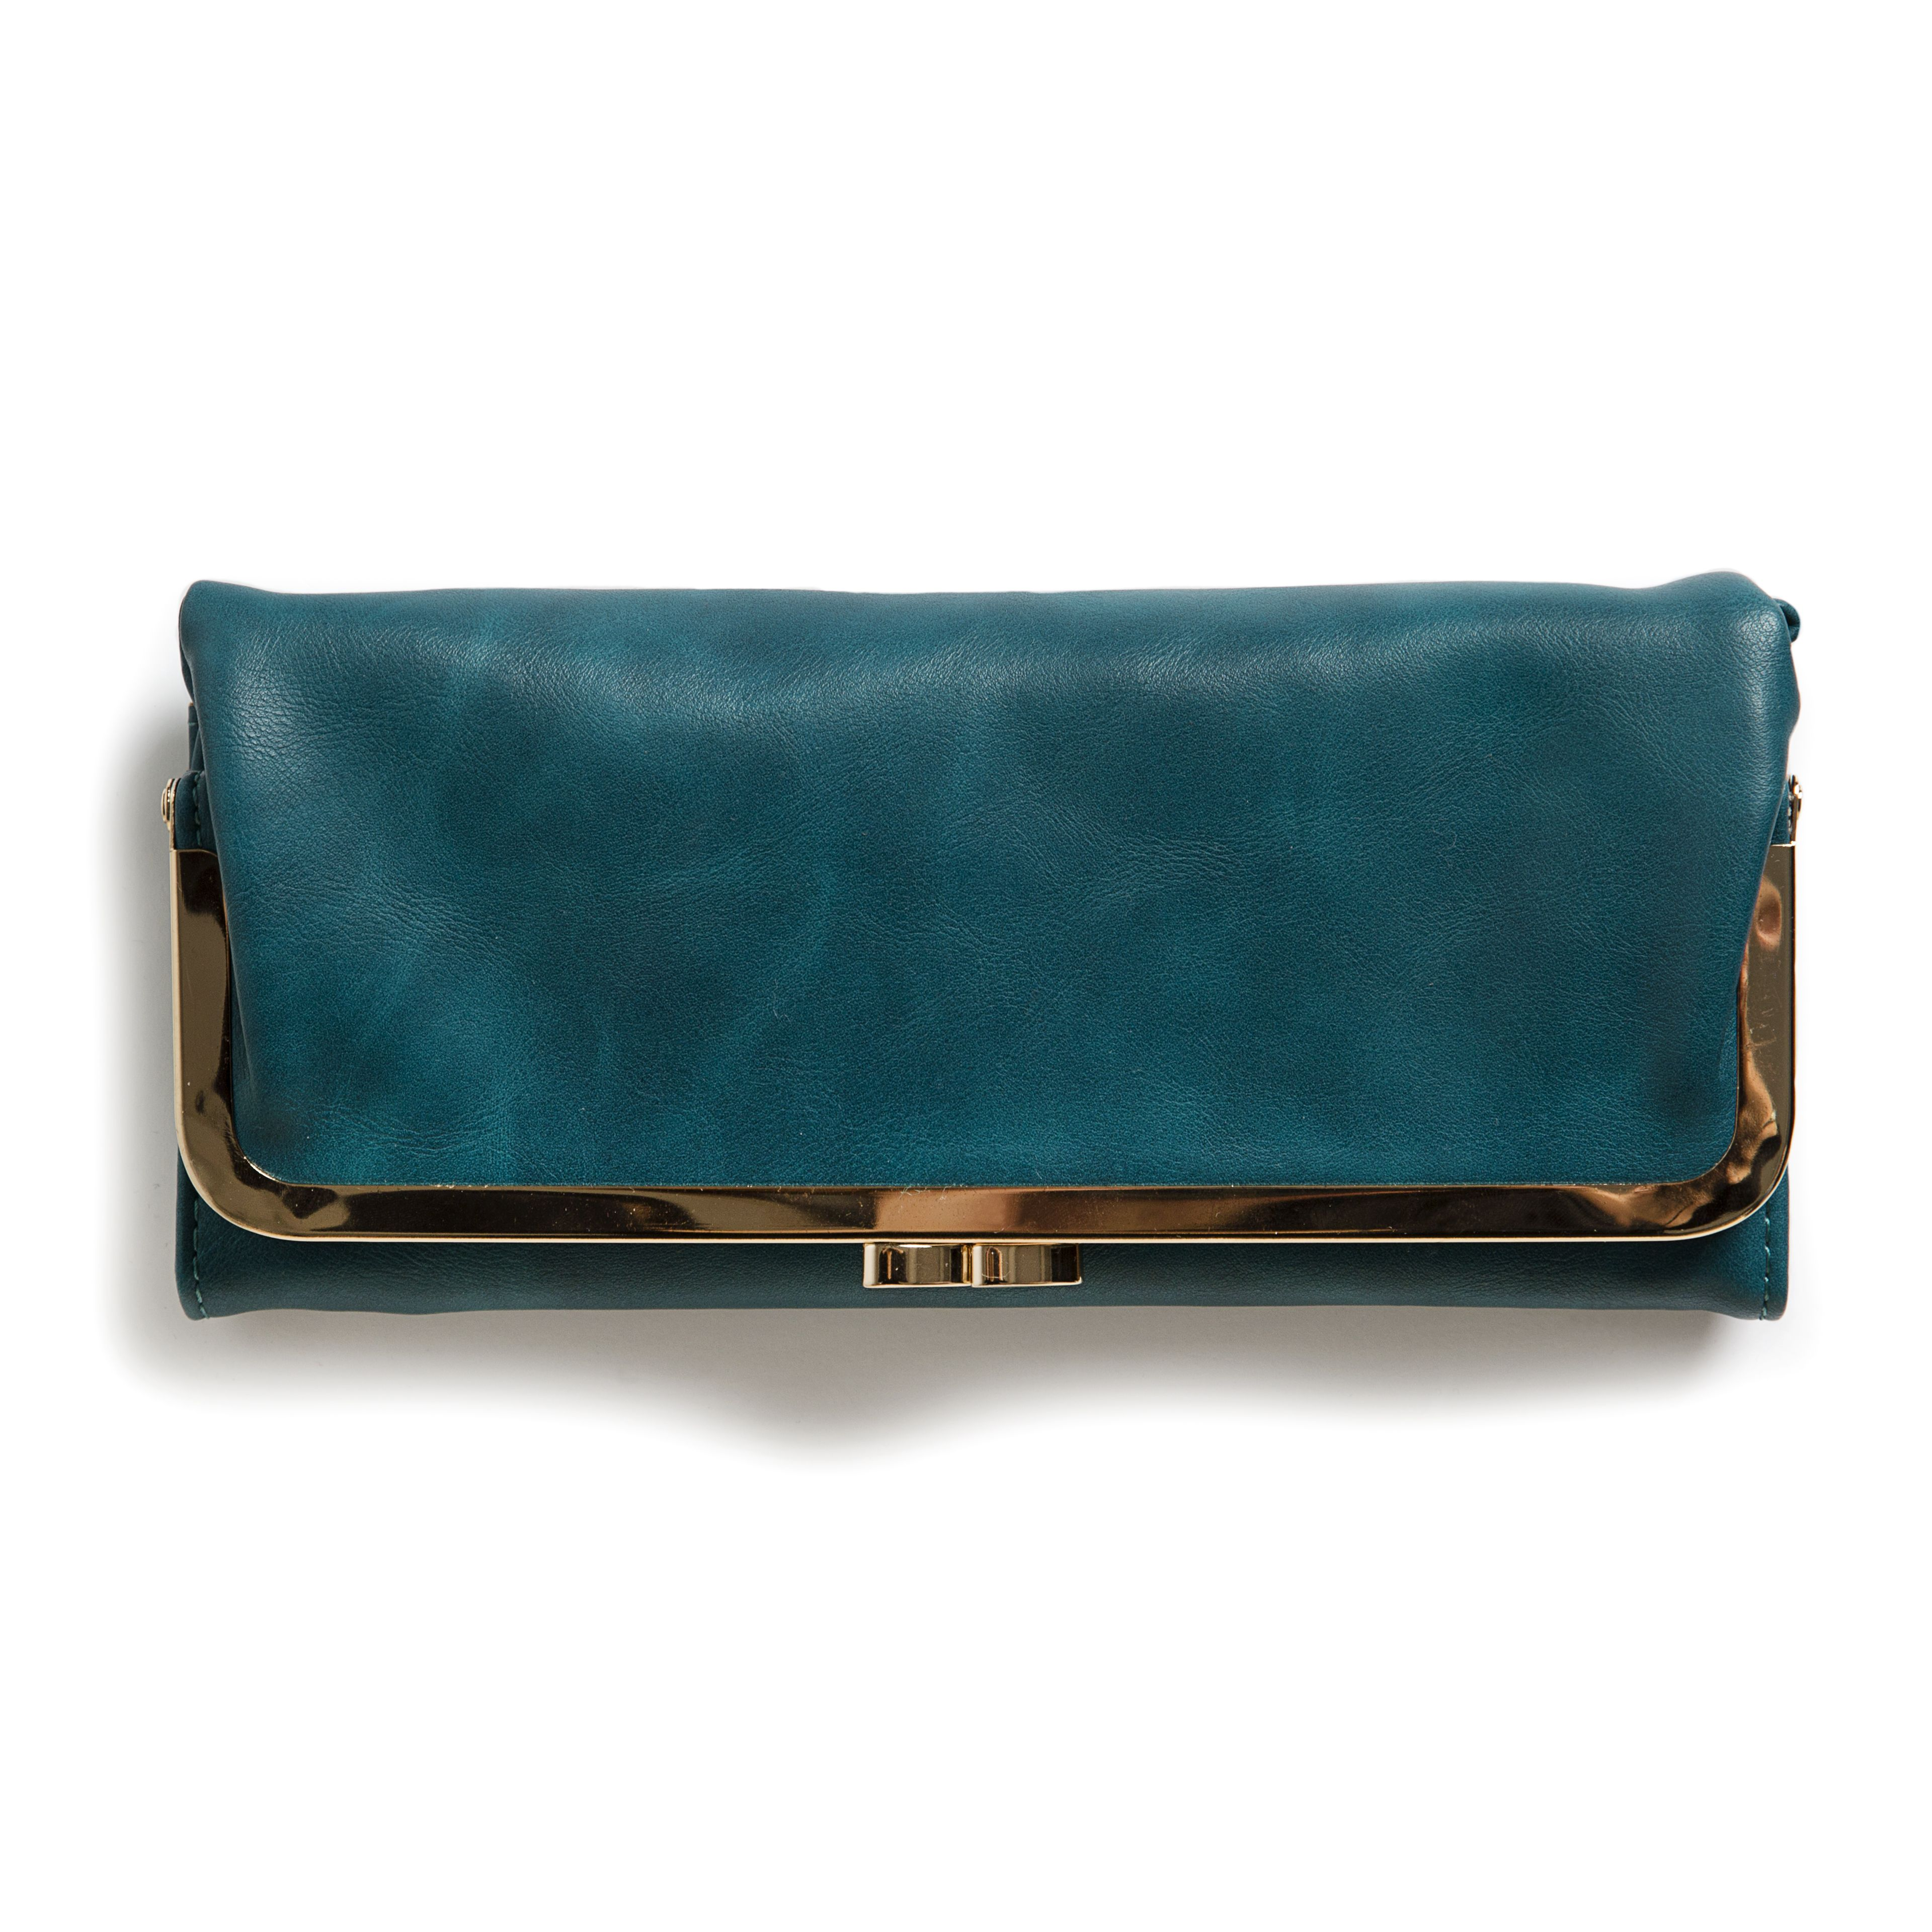 ffa169bdc Sade Fold-Over Wallet Clutch- black or brown preferably but open to colors  :) Hoping this is like Hobo Lauren wallet!!